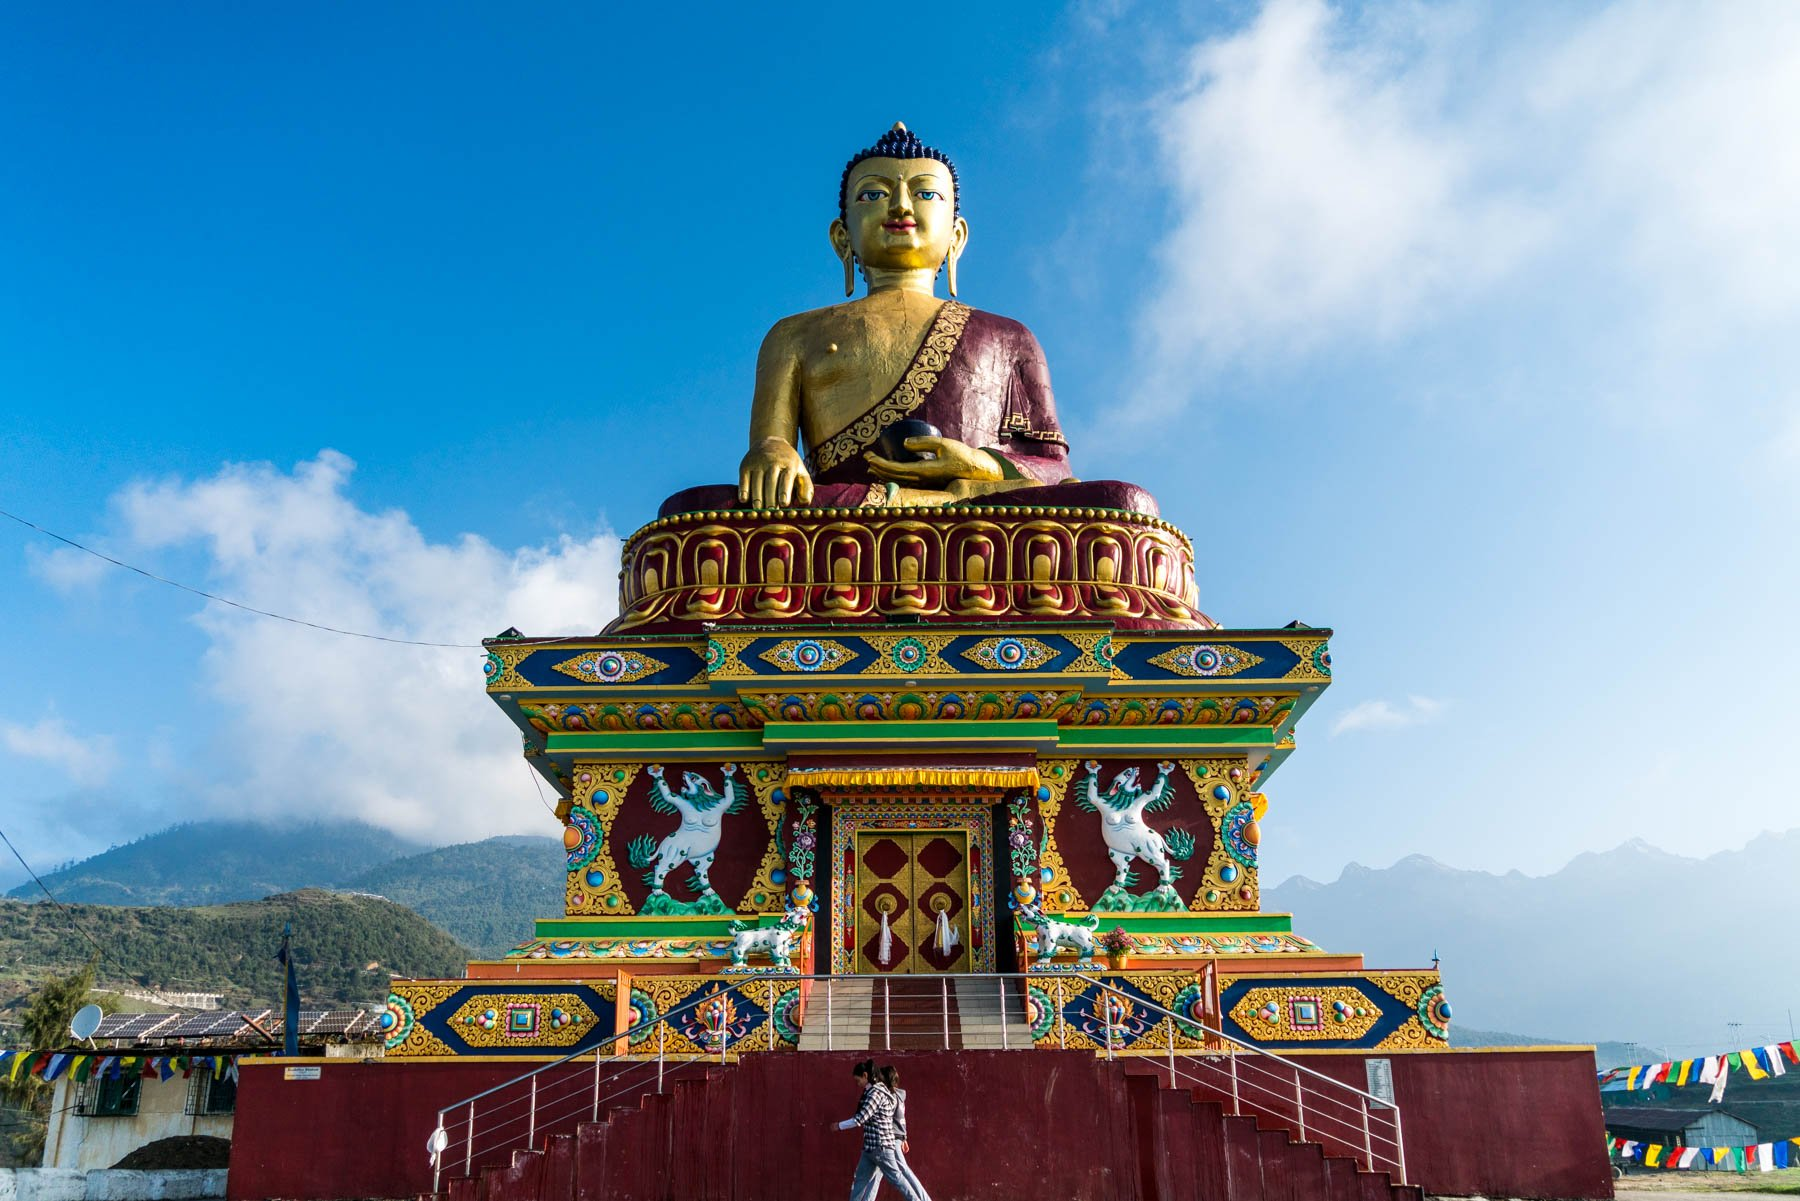 Backpacking Arunachal Pradesh travel guide - The big golden buddha in Tawang - Lost With Purpose